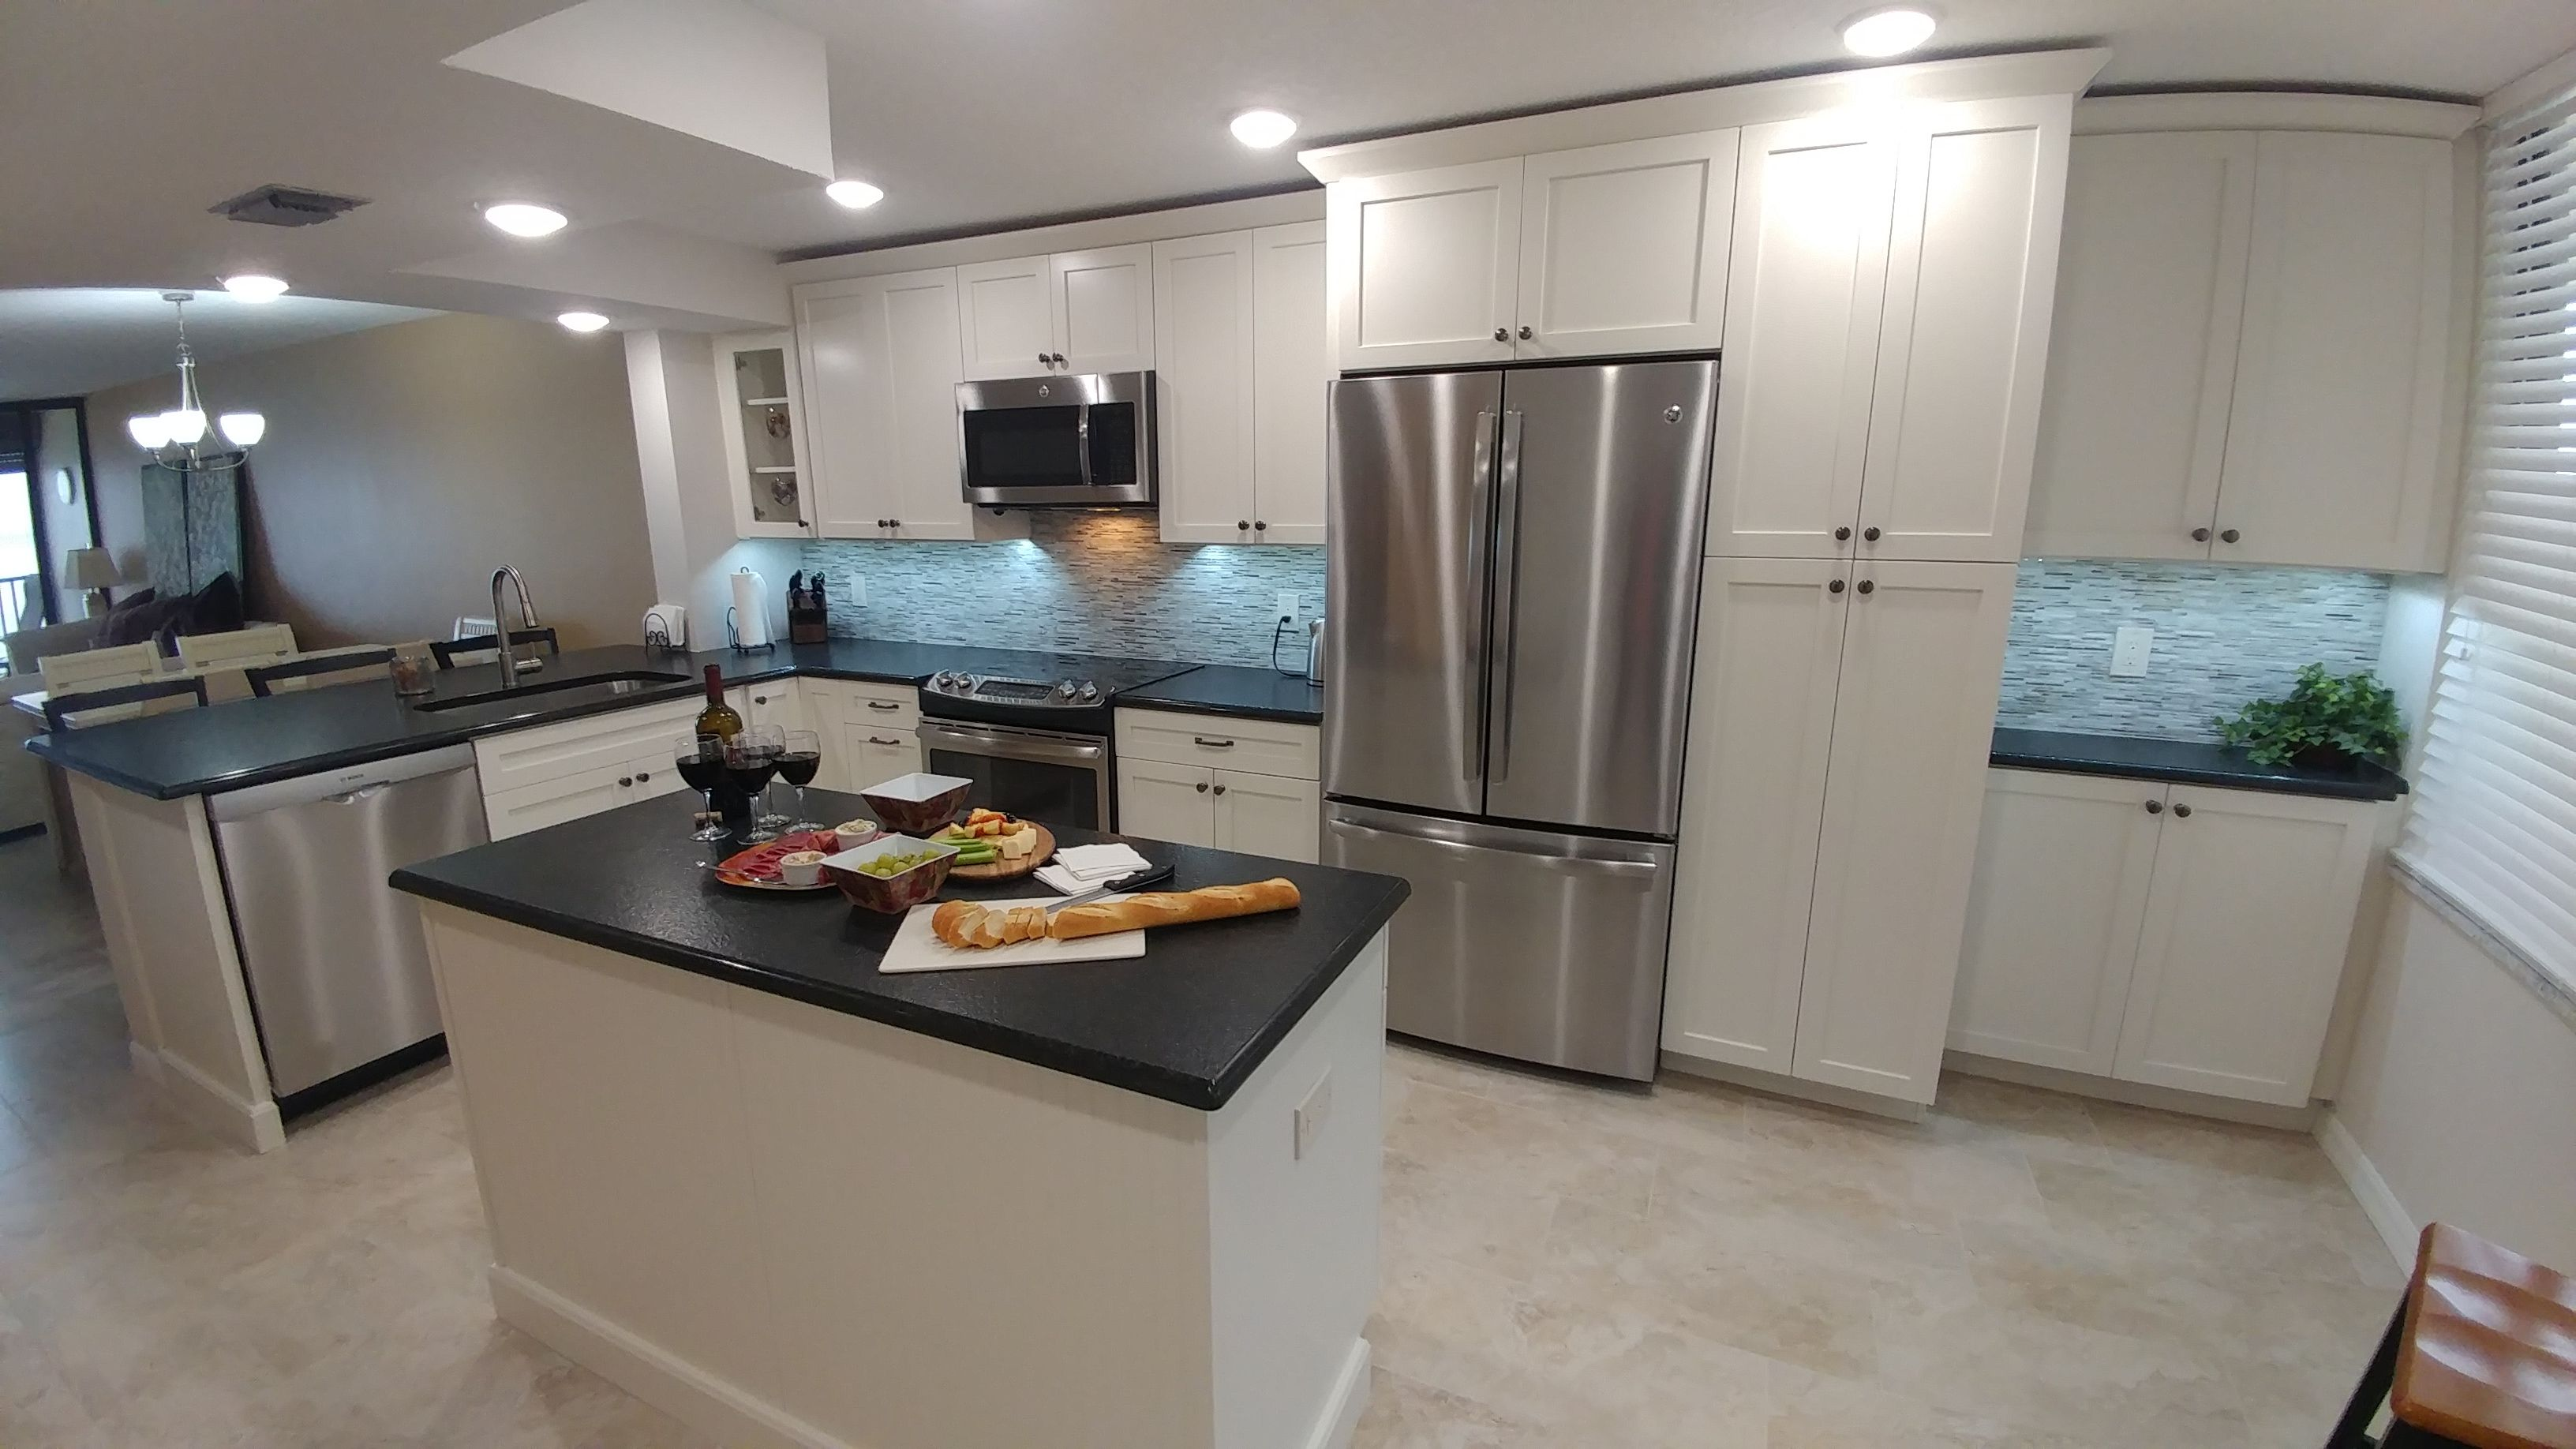 After The Kitchen Is So Open Now Alabaster Shaker Style Cabinets By Eudora With Black Leather Granite Shaker Style Cabinets Leather Granite Shell Backsplash